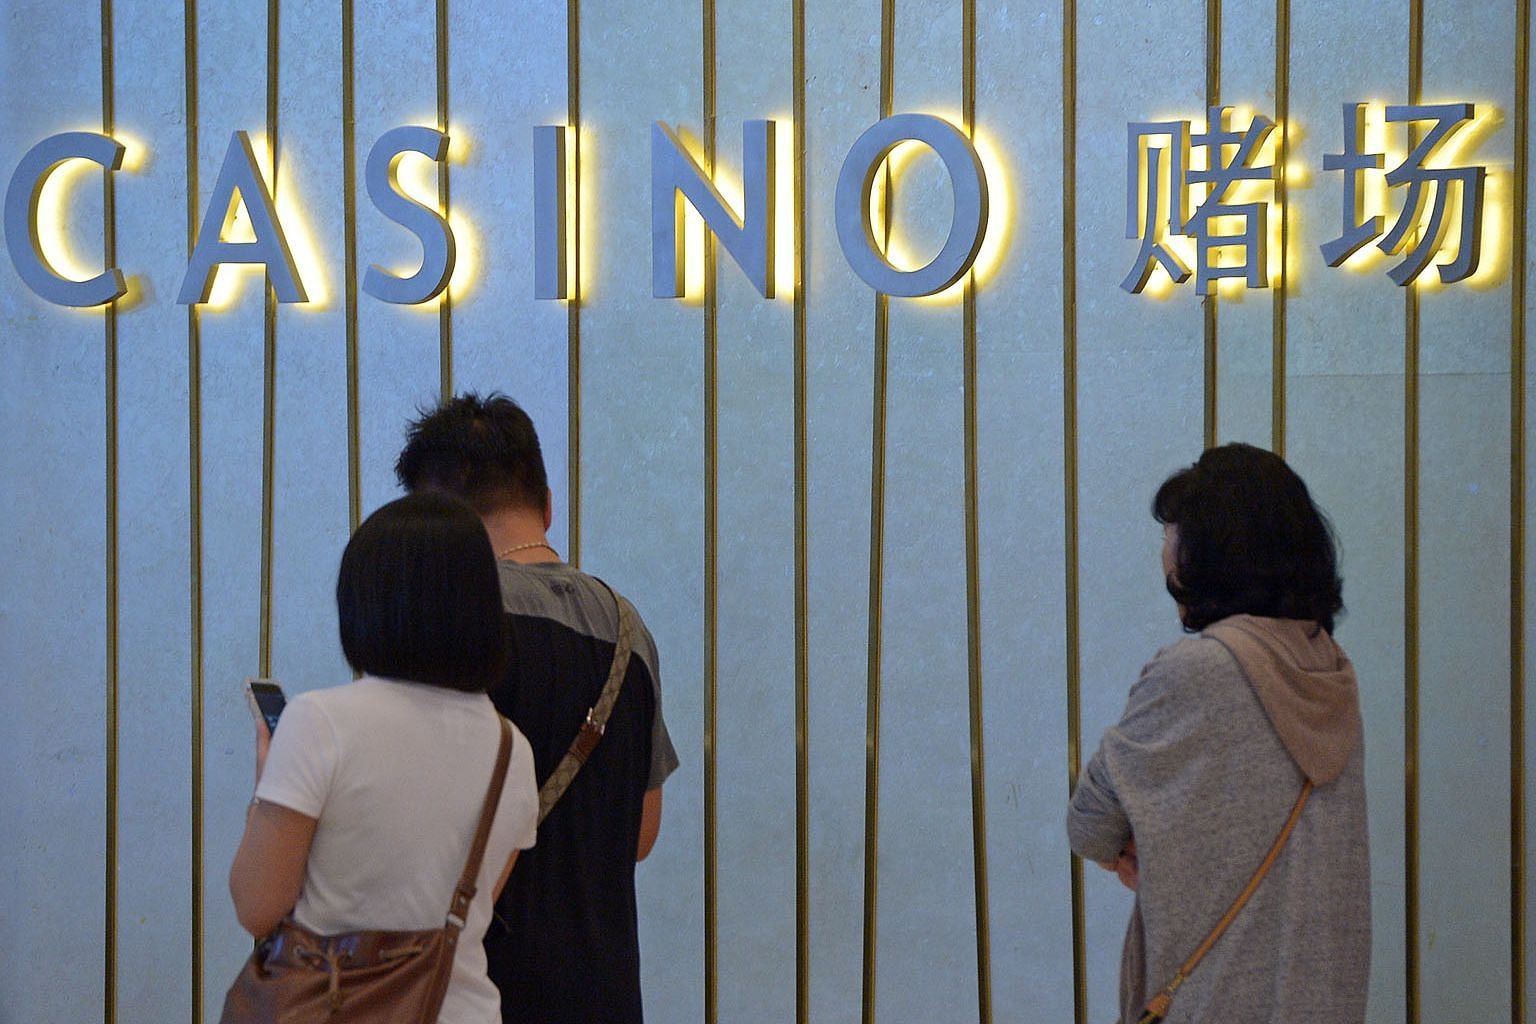 The success of Singapore's integrated resorts is a testament to their legislative framework, but the buoyant market climate suggests there might still be room to raise the casino tax, the writer says. ST FILE PHOTO